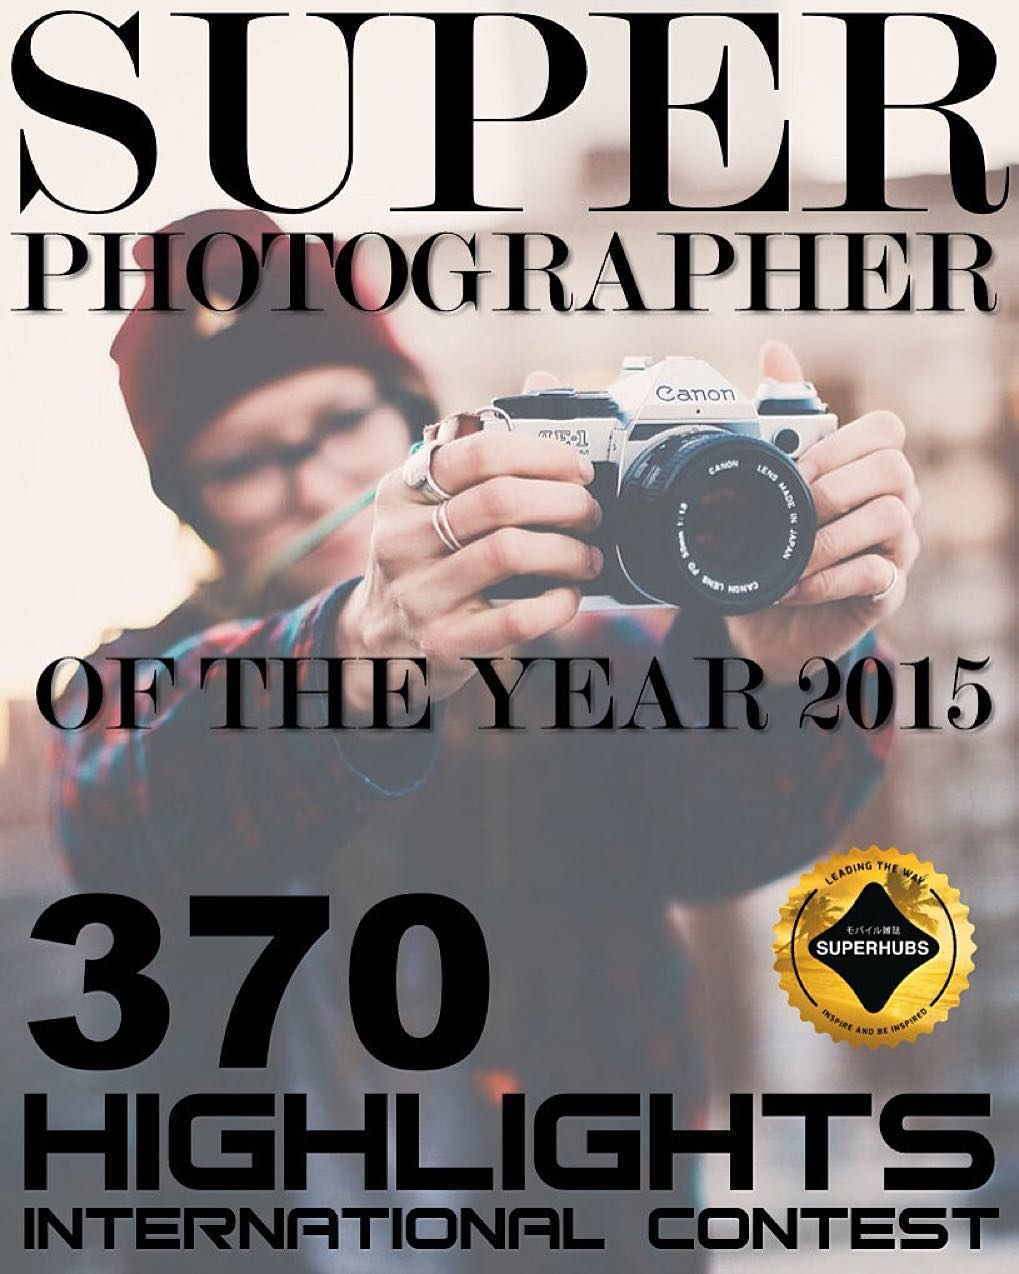 370 highlights! INTERNATIONAL CONTEST国際コンテスト  Super Photographer of the Year 2015   EDITION: DEC  2015  年 12月    SUPER FEATURE  370 highlights!  Each member @superhubs_members will make 2 highlights (185 members x 02 highlights)  The winner will have their photo presented to over  3.500.000 people!  We will feature DIFFERENT PICTURES of a SINGLE photographer!  Dec 23: Winner Disclosure   TO PARTICIPATE IS SIMPLE  Follow: @superhubs @superhubs_power @superhubs_shot @superhubs_souls @superhubs_lovers  Put the tag  #superhubs_370  in your best photos.  Tag 2 best friends in this post   RULES  Must be YOUR own photos. Do NOT enter COLLABS! Only 2 entries new and old photos.  Each Hub that takes part will choose a photo from your feed and will feature it on their HUB! SH has hubs with many different styles; depending on the hub your photo will/can be edited to be featured for example: a B&W Hub will edit your photo to B&W (if your photo isn't black and white) before featuring it.  By using the promotional tag you automatically agree to all these rules and authorize the hubs to edit your photos (where necessary).   Board  @carlos_koji @jamjammal @sohakouraytem @chasingcorinna @marwank33 @aelfotografo @Jeff_nct  Photo courtesy  @carssun  GOOD LUCK! 幸運 #sh15xxx